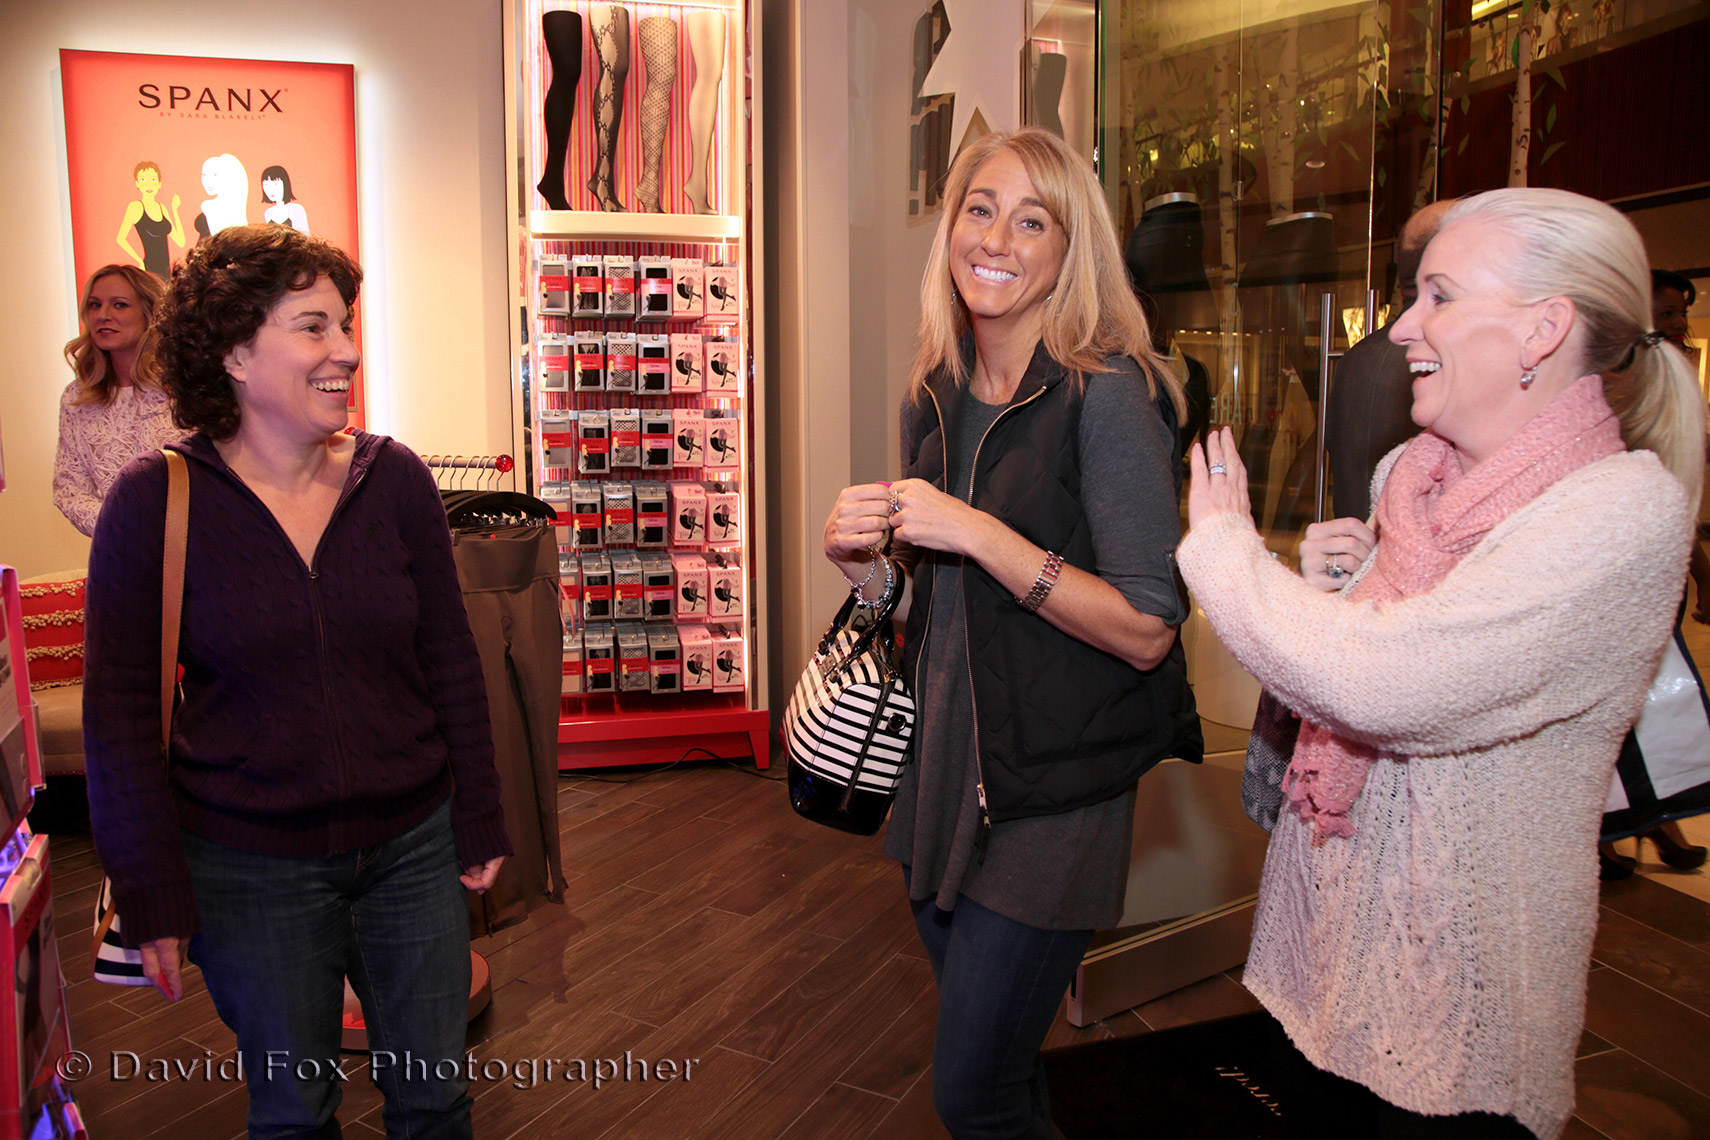 Mingling at Spanx Store Opening David Fox Photographer